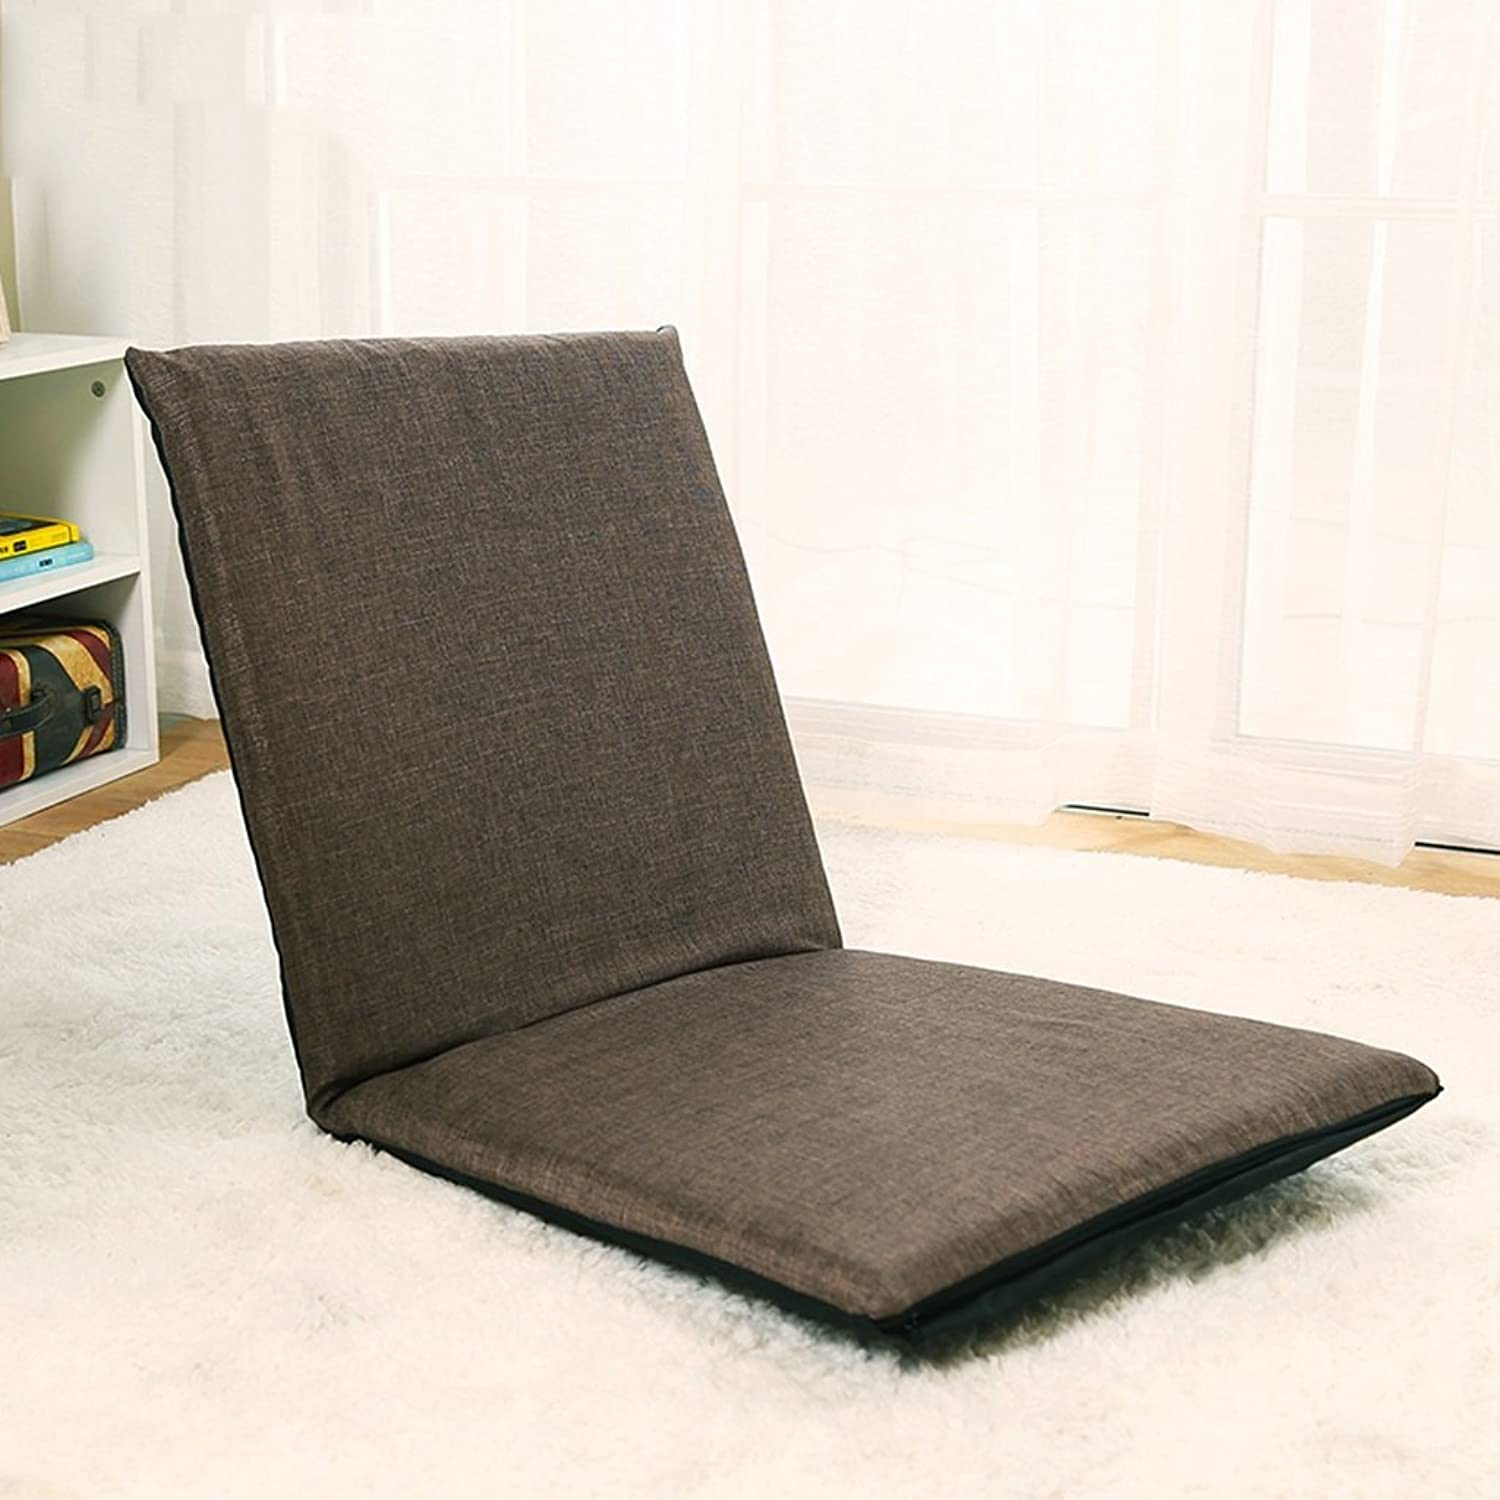 GFL-Chairs Floor Chair Foldable Bay Windo Chair Single Sofa Sandy Beach Leisure Recliners 5 Files Adjustable (A+++) (color   Brown)